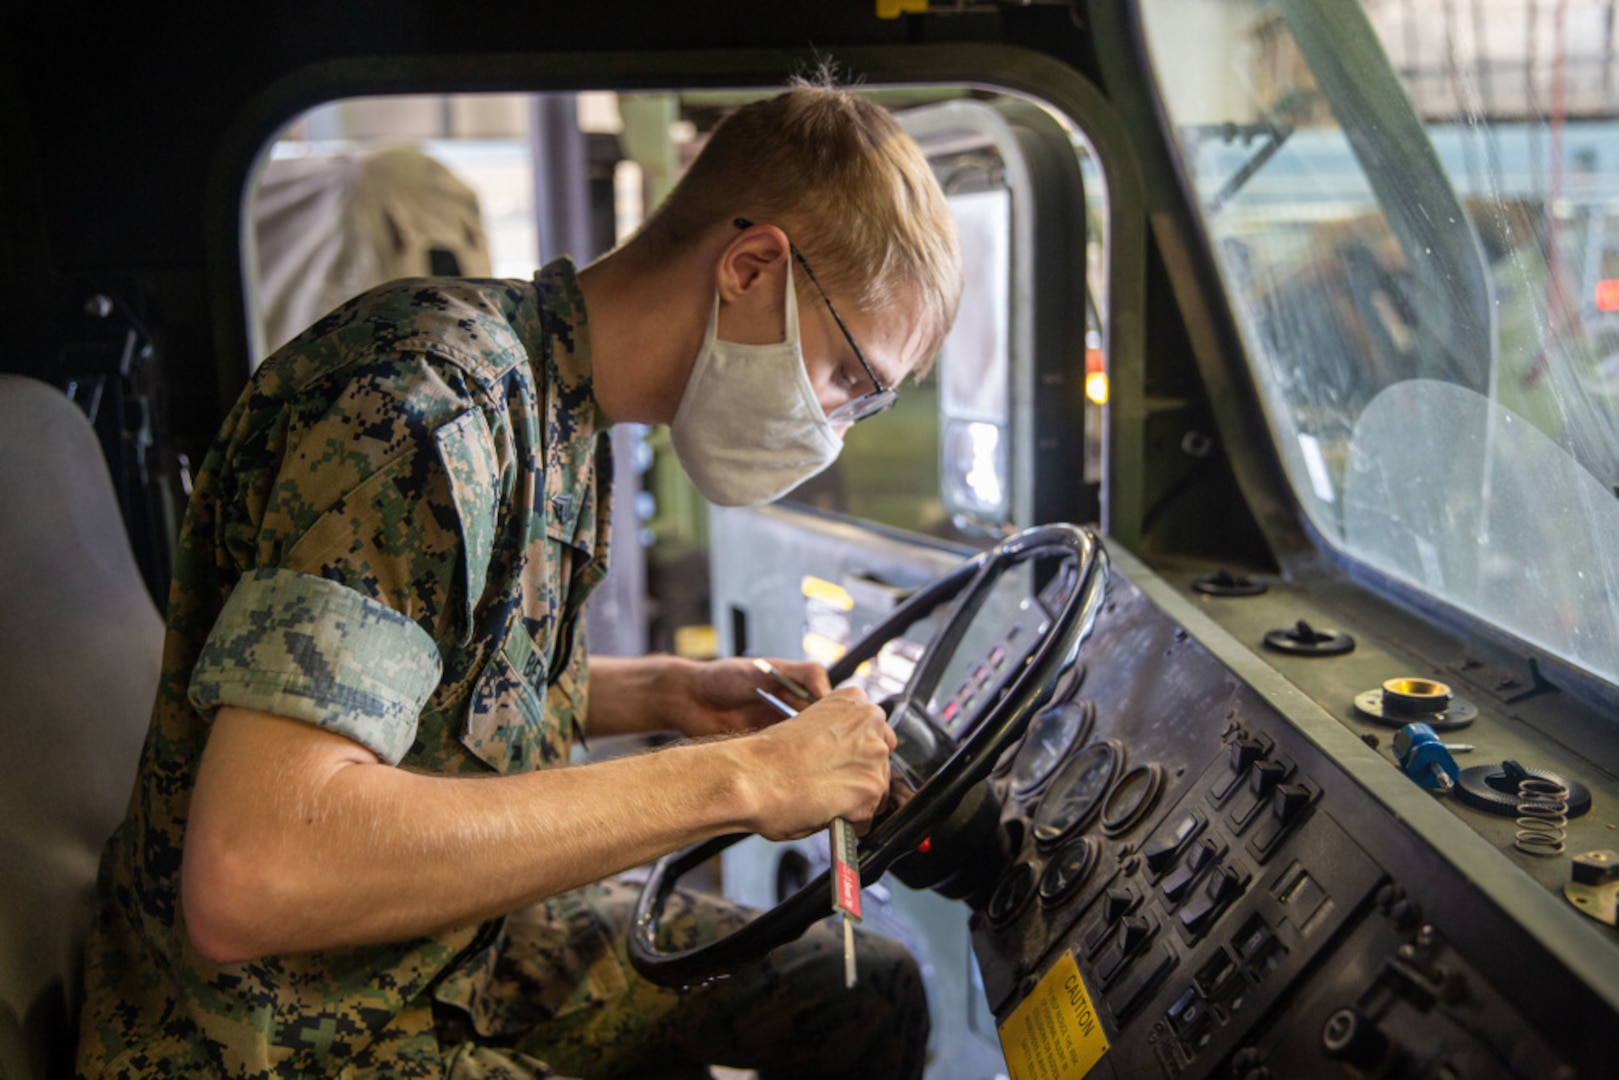 Cpl. Aiden Bemis, a digital manufacturing engineer with 1st Supply Battalion, 1st Marine Logistics Group, I Marine Expeditionary Force, measures the width of a steering wheel column at Marine Corps Base Camp Pendleton, April 29, 2021. Bemis provided the capability to mass produce a steering wheel remover tool that prevents damage to the steering wheel column during removal. The tool was originally designed by Staff Sgt. Kyle Owens, a motor transportation chief with Combat Logistics Battalion 5, 1st MLG. In 2012, after cracking multiple steering wheel columns using a slide hammer kit, he came up with the idea to drill three holes into a standard washer and weld a nut so that he could effectively remove a steering wheel from the Medium Tactical Vehicle Replacements and Logistics Vehicle System Replacements.